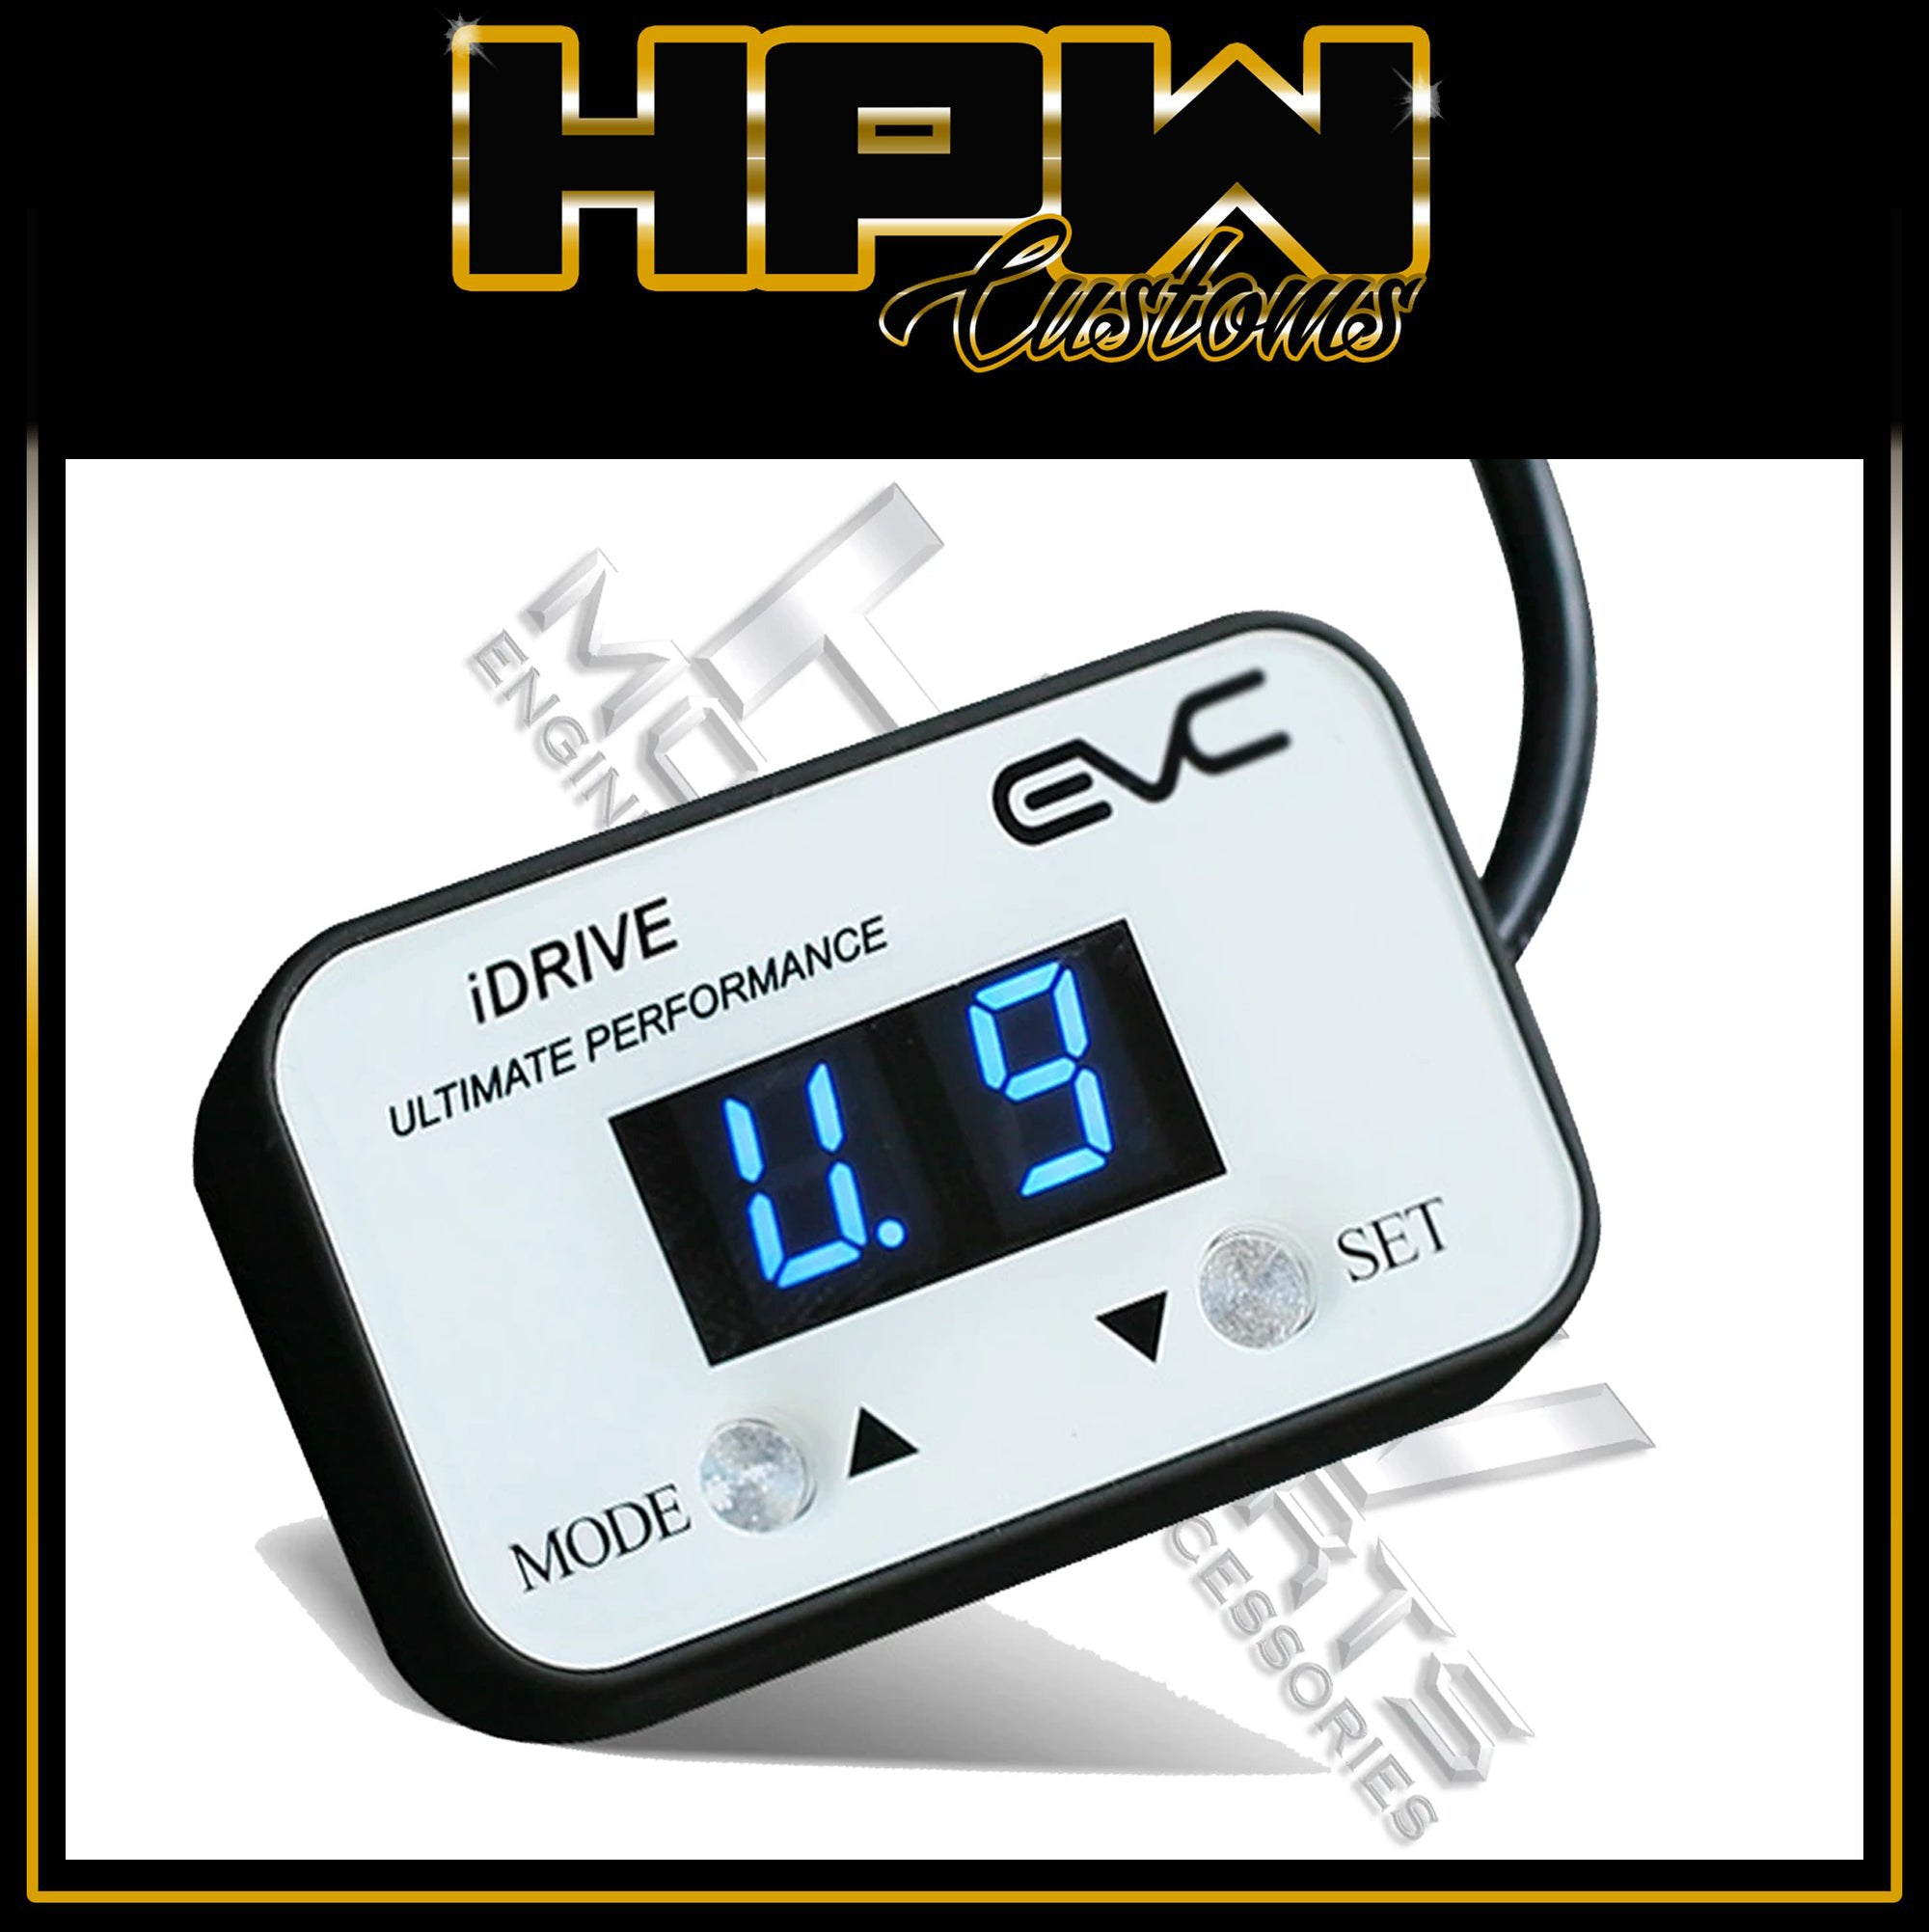 RAM 1500 iDrive windbooster throttle controller - Unleash the power!